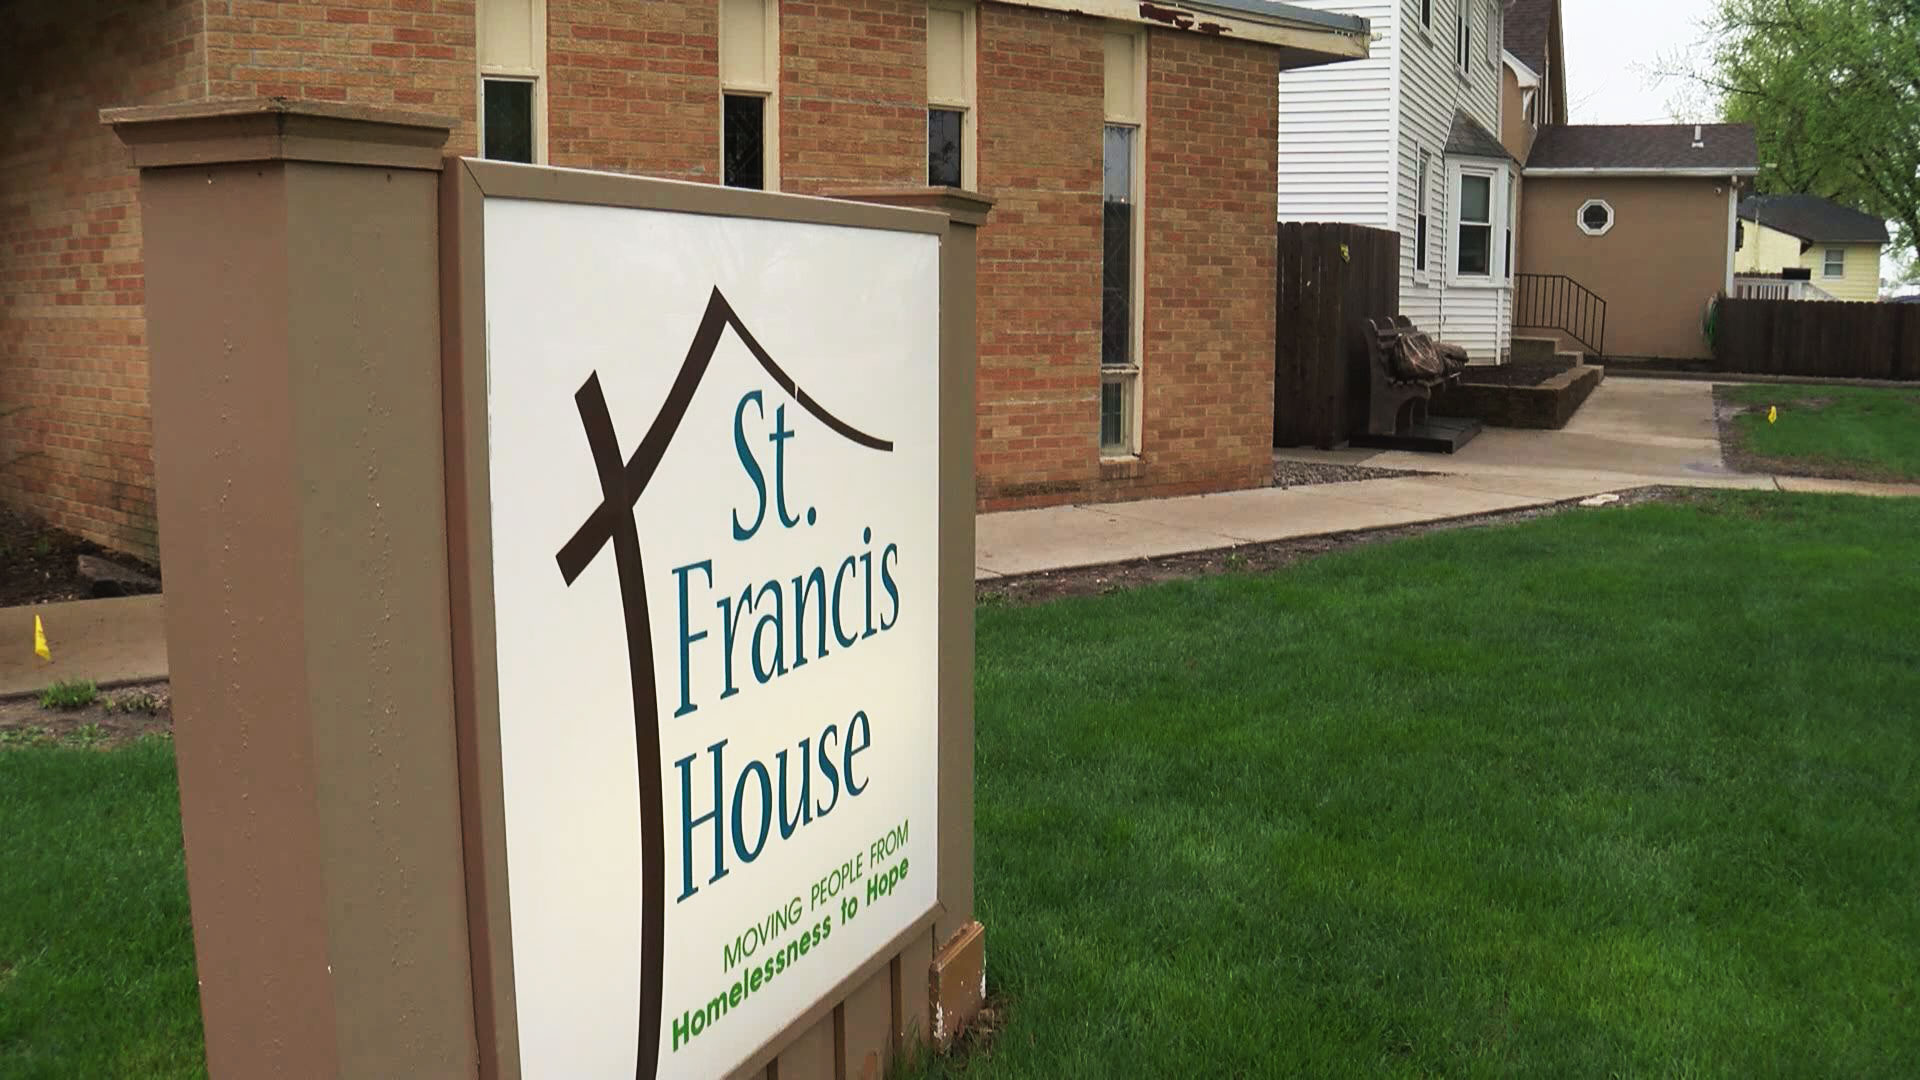 KELO St. Francis House General.jpg